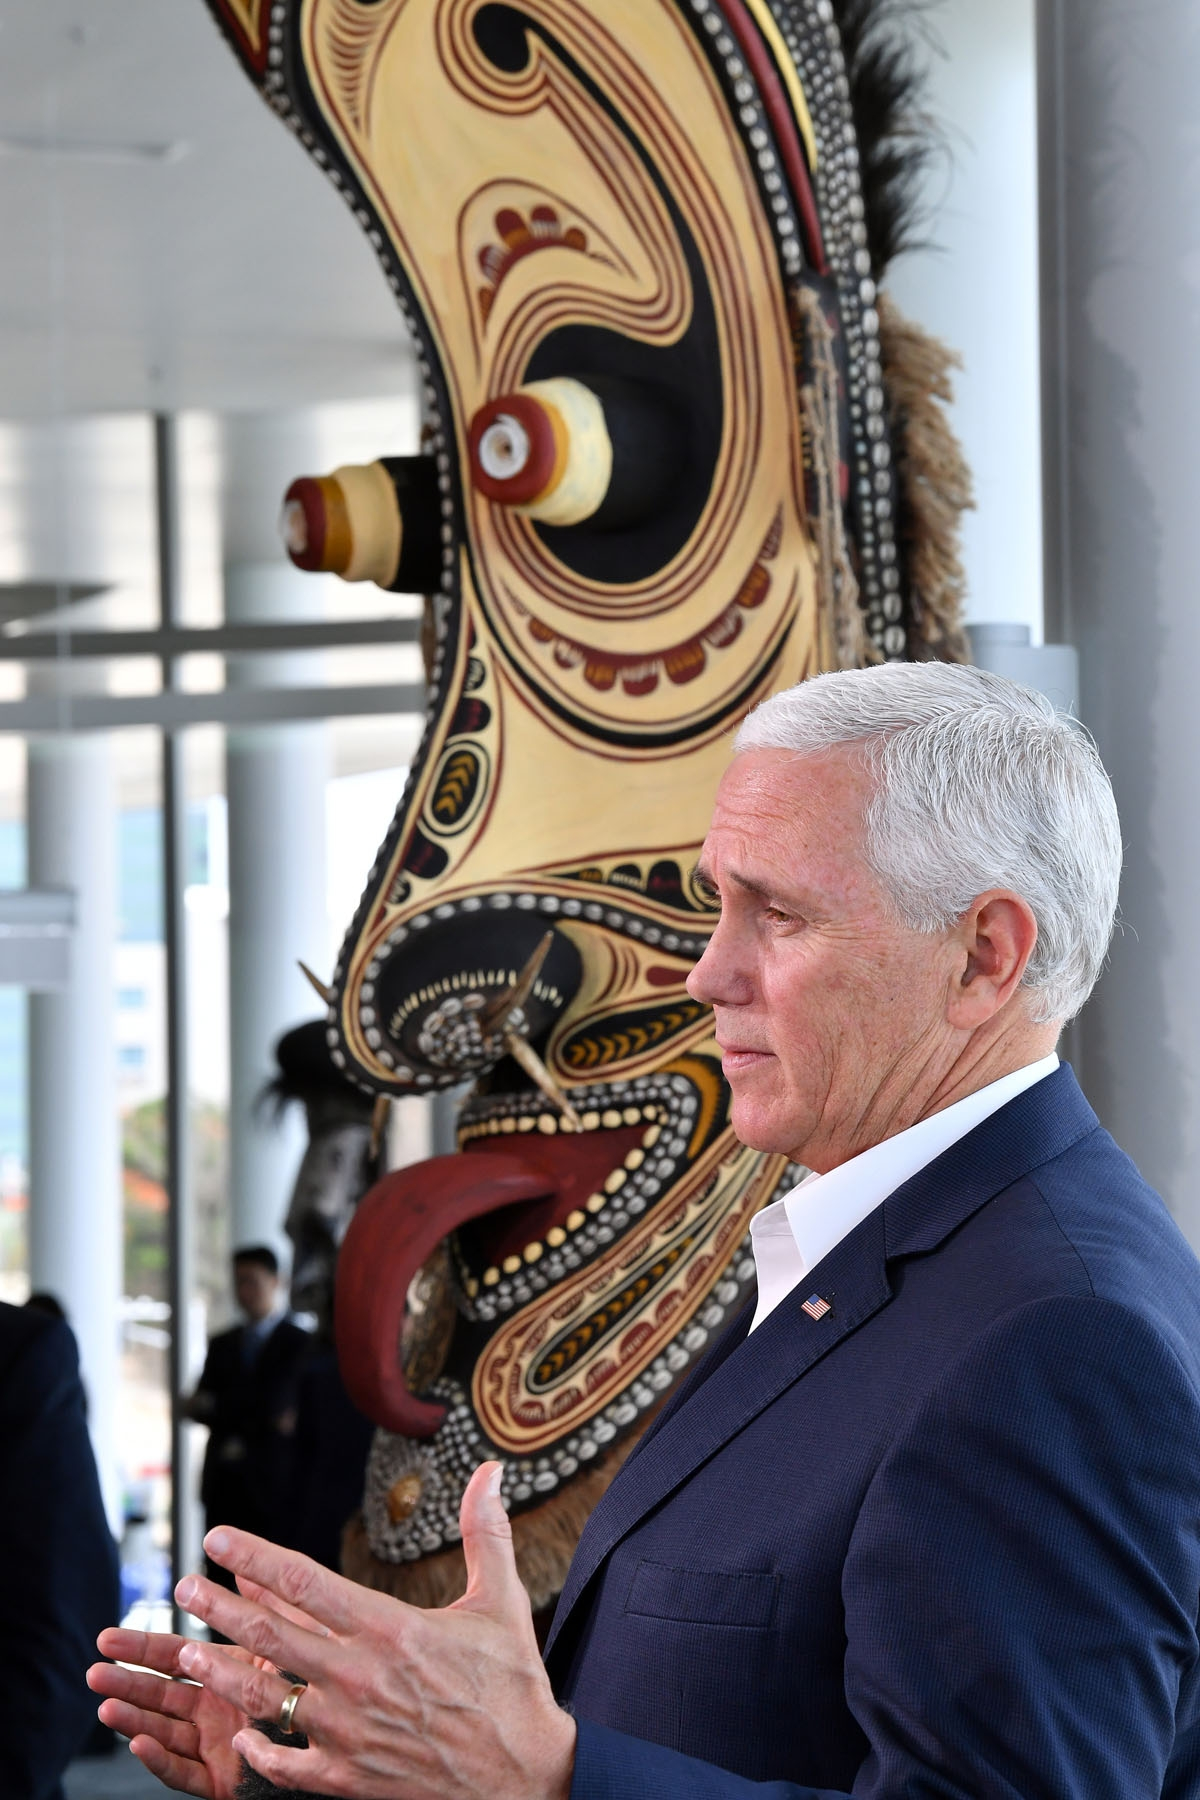 US Vice President Mike Pence speaks to the media while standing next to a traditional mask display, at the end of meetings at the Asia-Pacific Economic Cooperation (APEC) Summit in Port Moresby on November 18, 2018. (